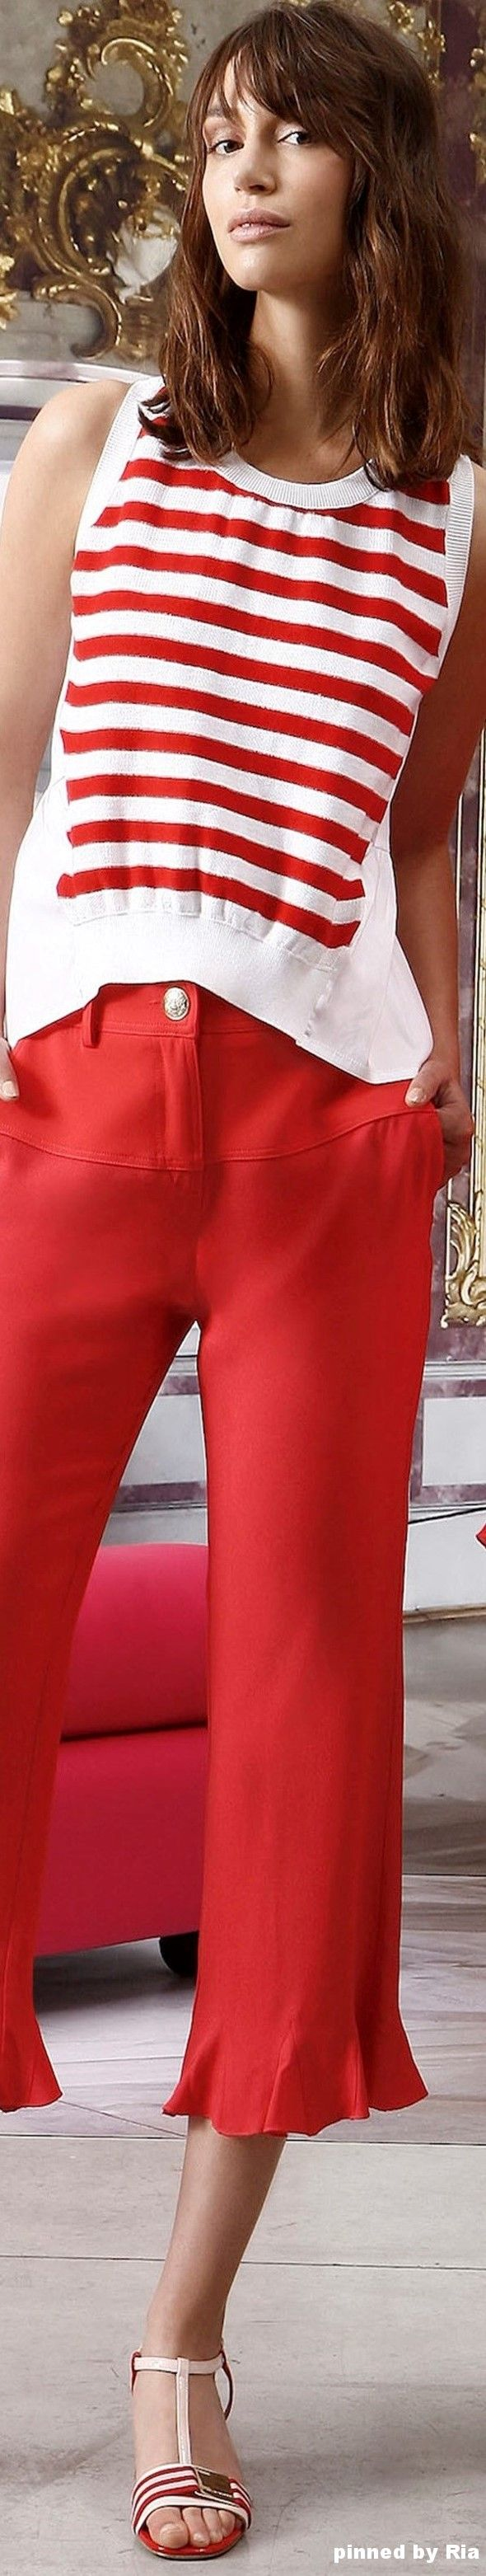 Top ideas for red pants - Atos Lombardini Resort 2017 L Striped Top Red Pants Closet Ideas Fashion Outfit Style Apparel